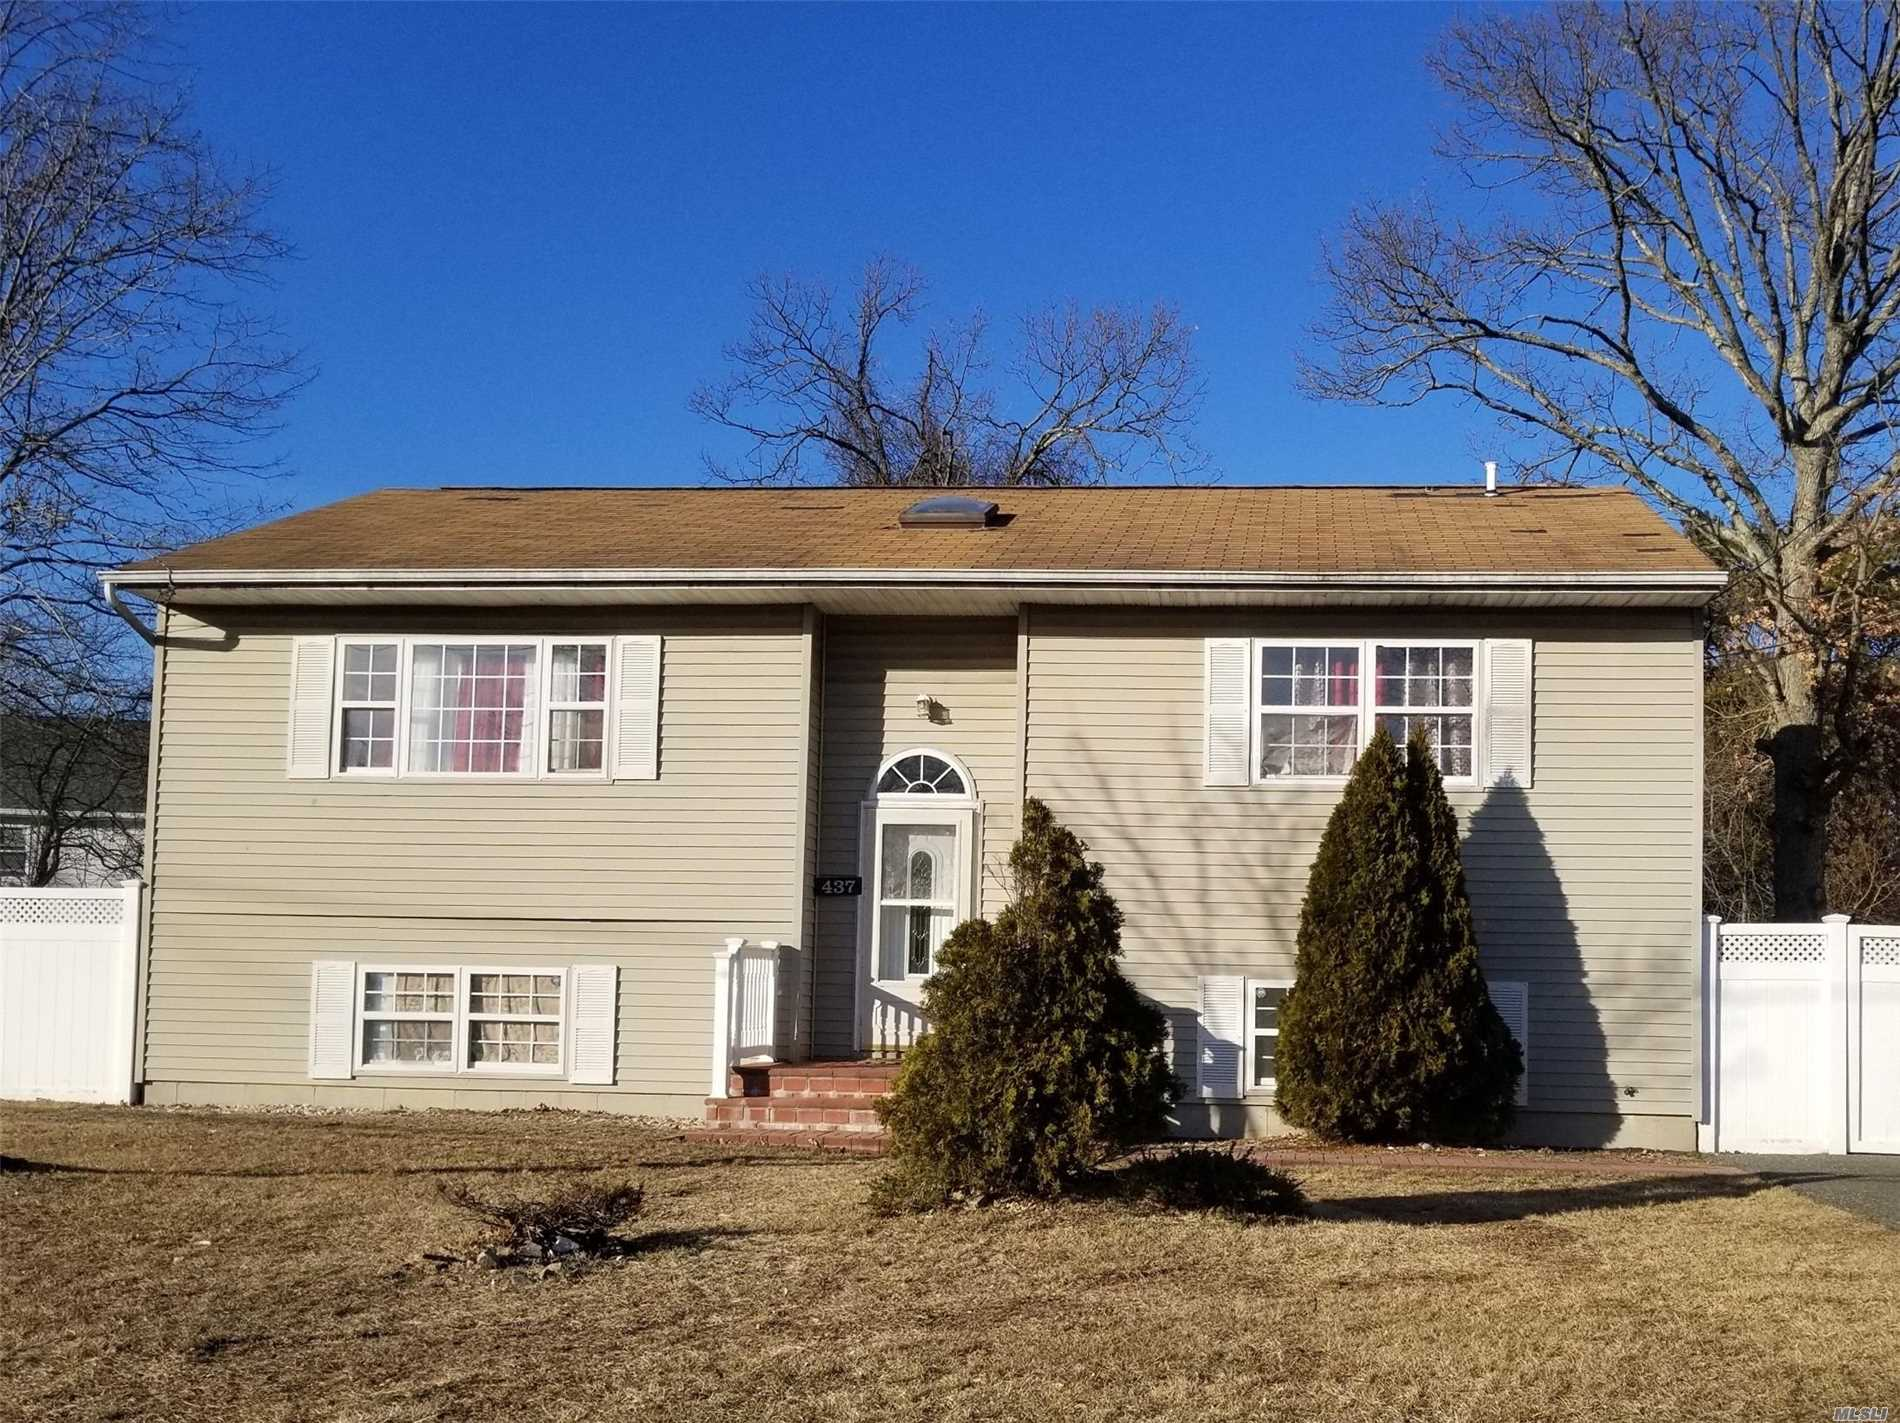 Large Hi Ranch With 10 Rooms 5 Beds And 2 Bath. Copiague Schools. Close To Shopping, Transportation And Major Roadways